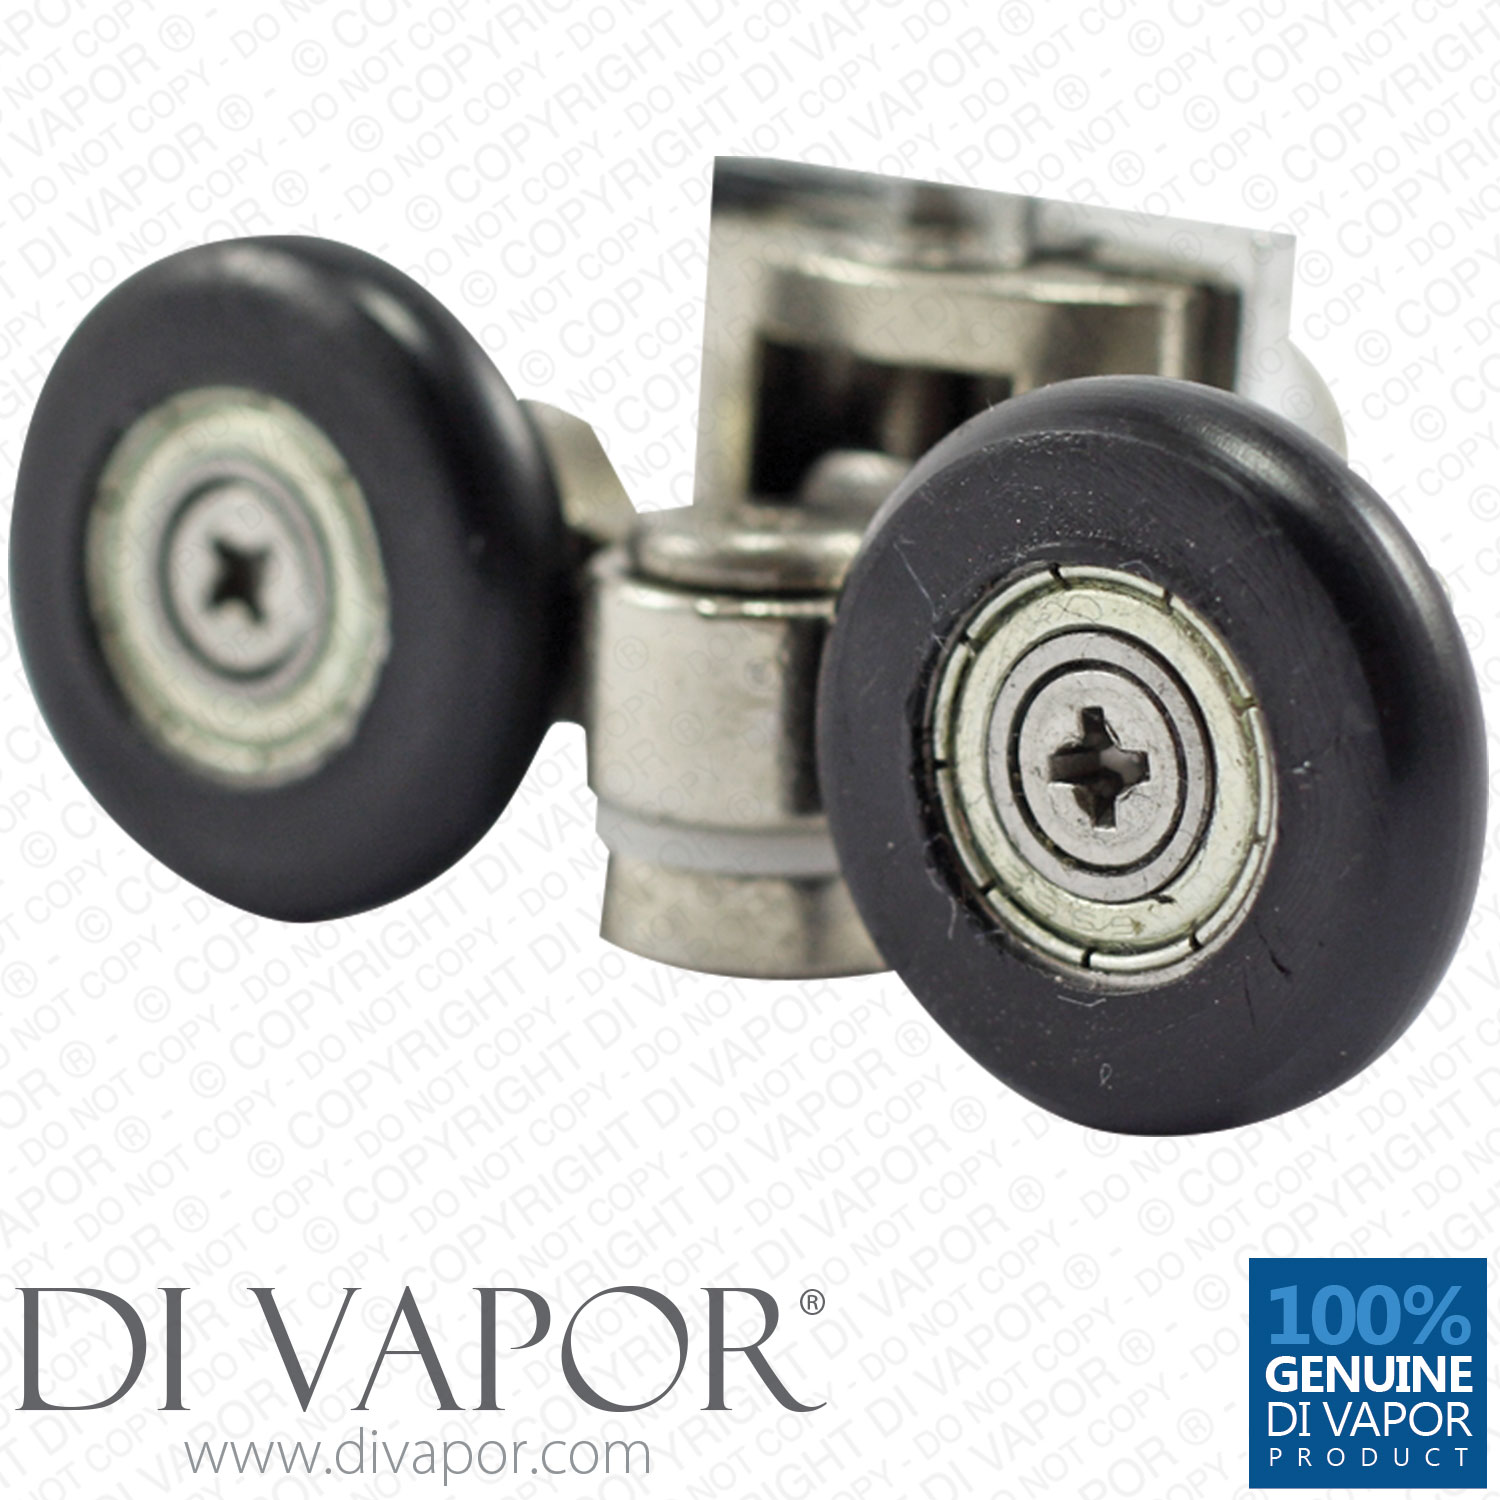 25mm Double Swivel Shower Rollers Metal Zinc Alloy